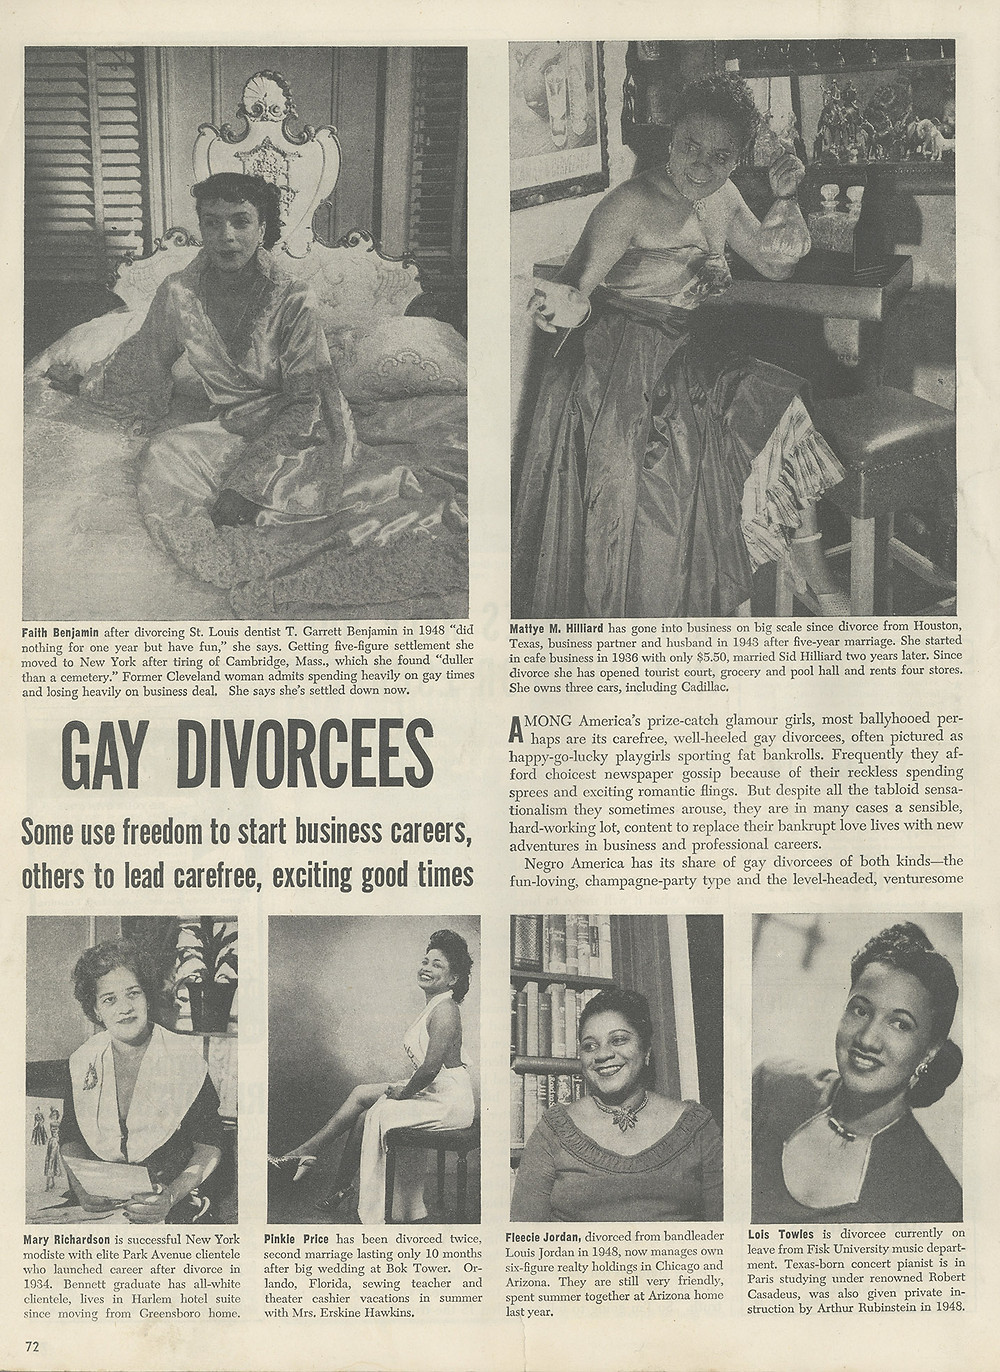 Article from the February 1950 issue of Ebony Magazine